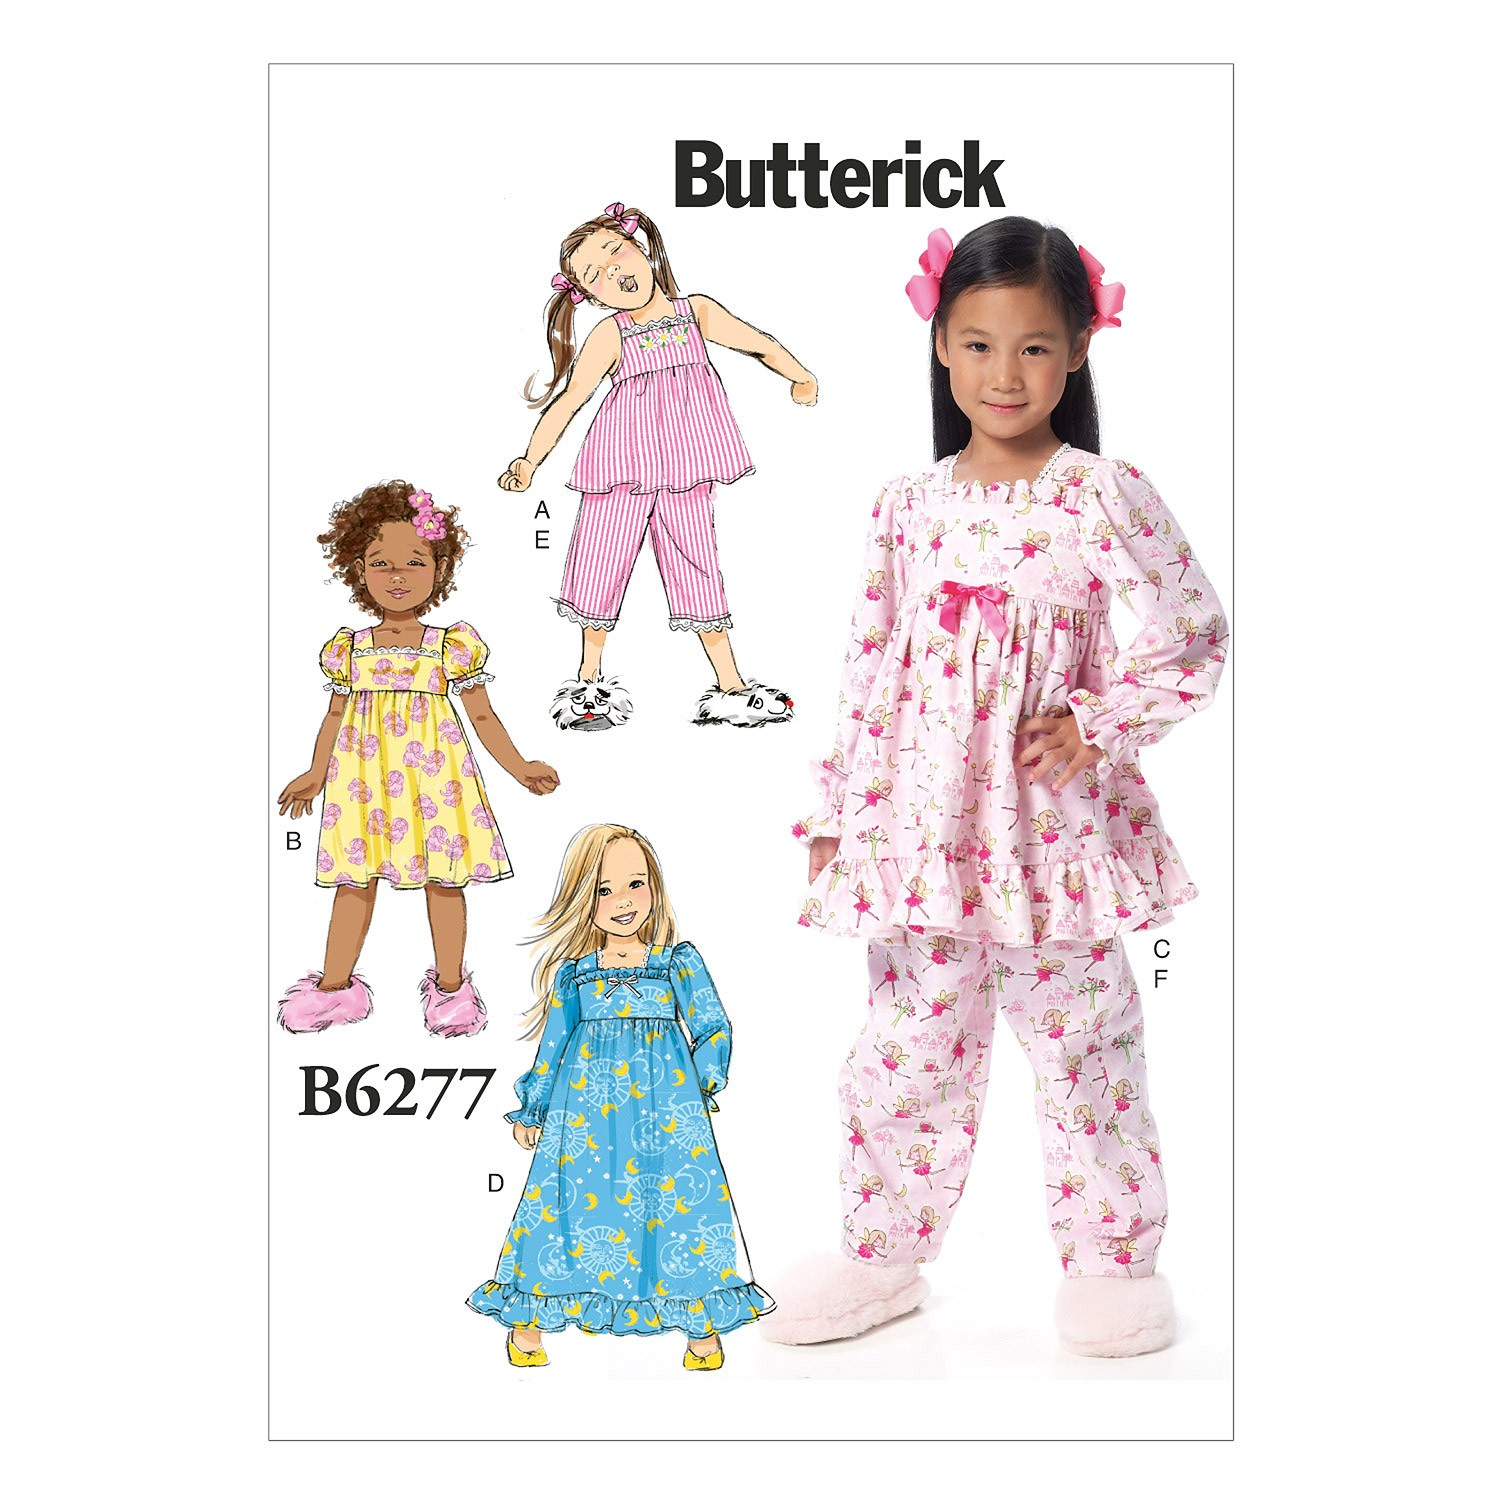 Butterick Sewing Pattern 6277 Misses' Childrens Sleepwear Top Dress Trousers